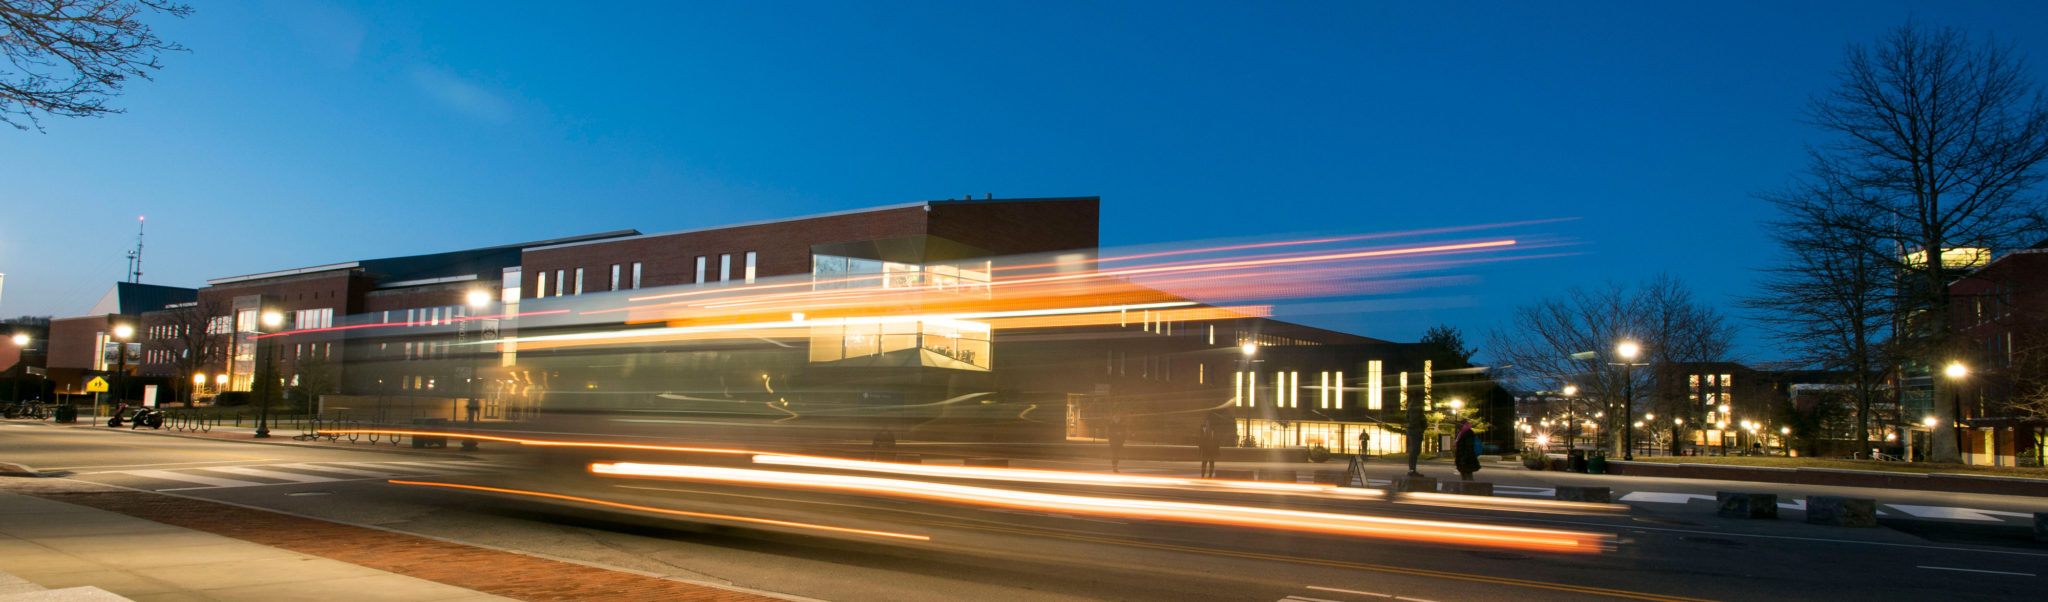 Night views of the Student Union with light trails from cars traveling on Hillside Road